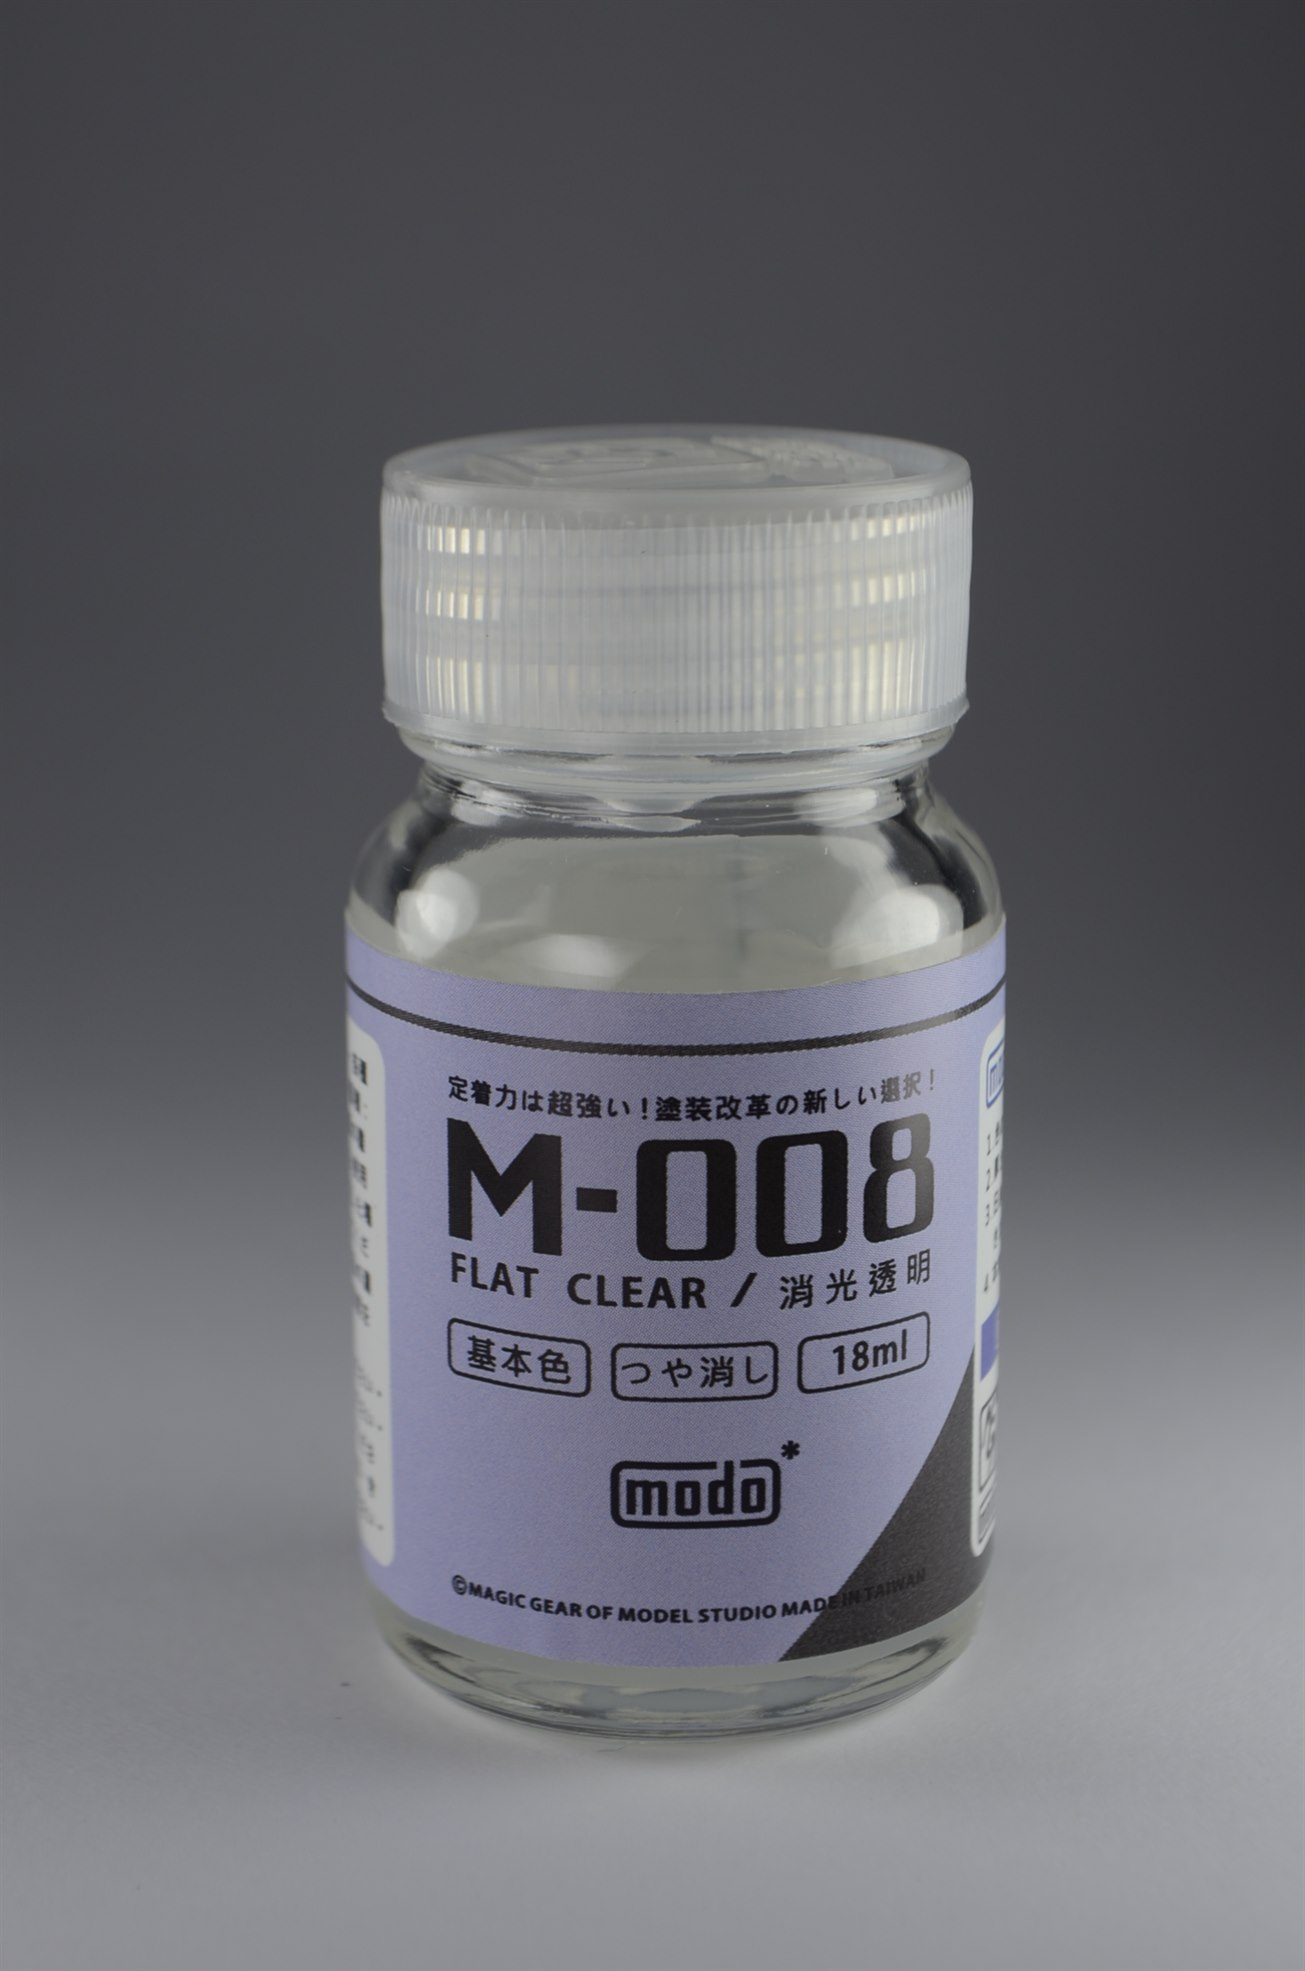 MODO Flat Clear M-008 18ML